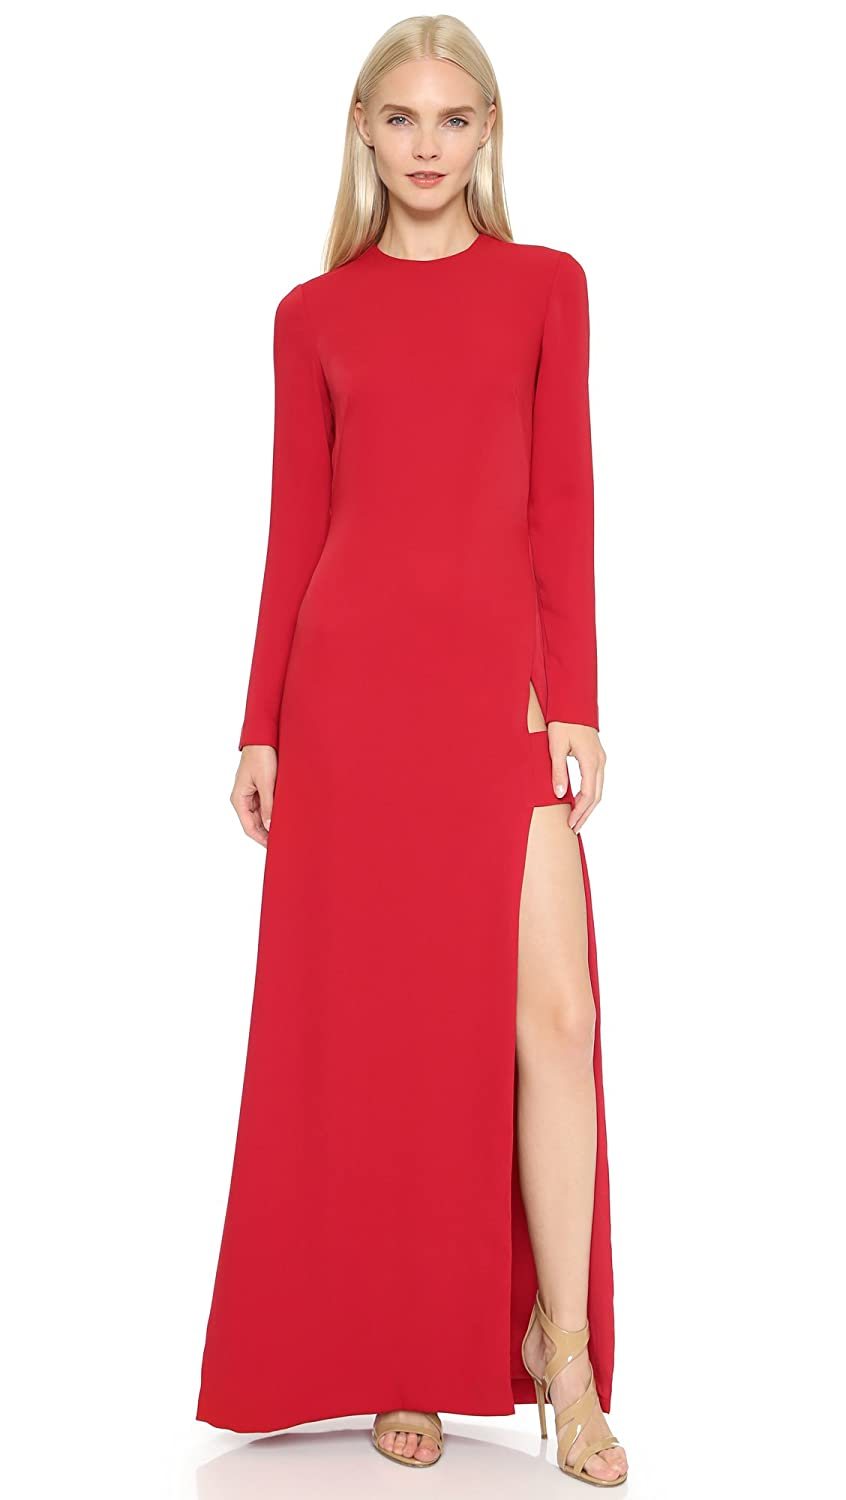 Amazon.com: Jill Jill Stuart Womens Long Sleeve Maxi Dress with Slit, Persimmon, 10: Clothing